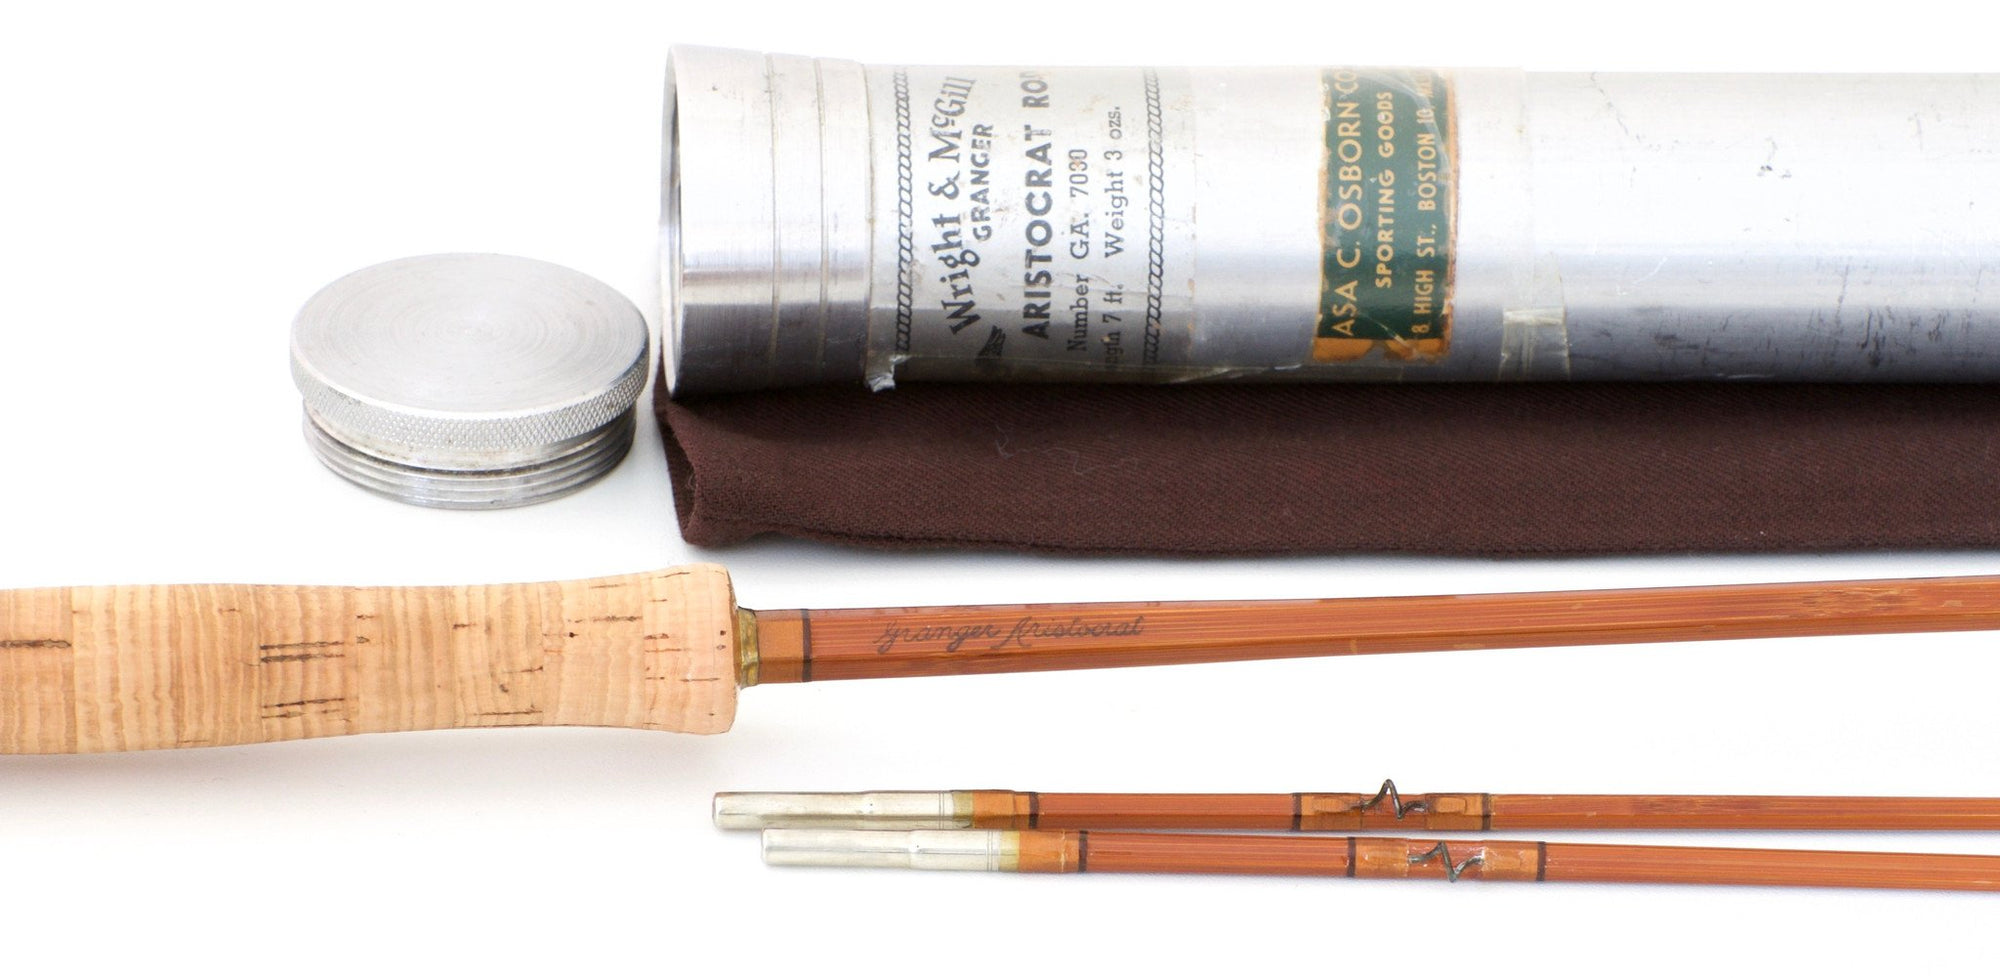 Wright & McGill Granger Aristocrat Model 7030 Bamboo Rod